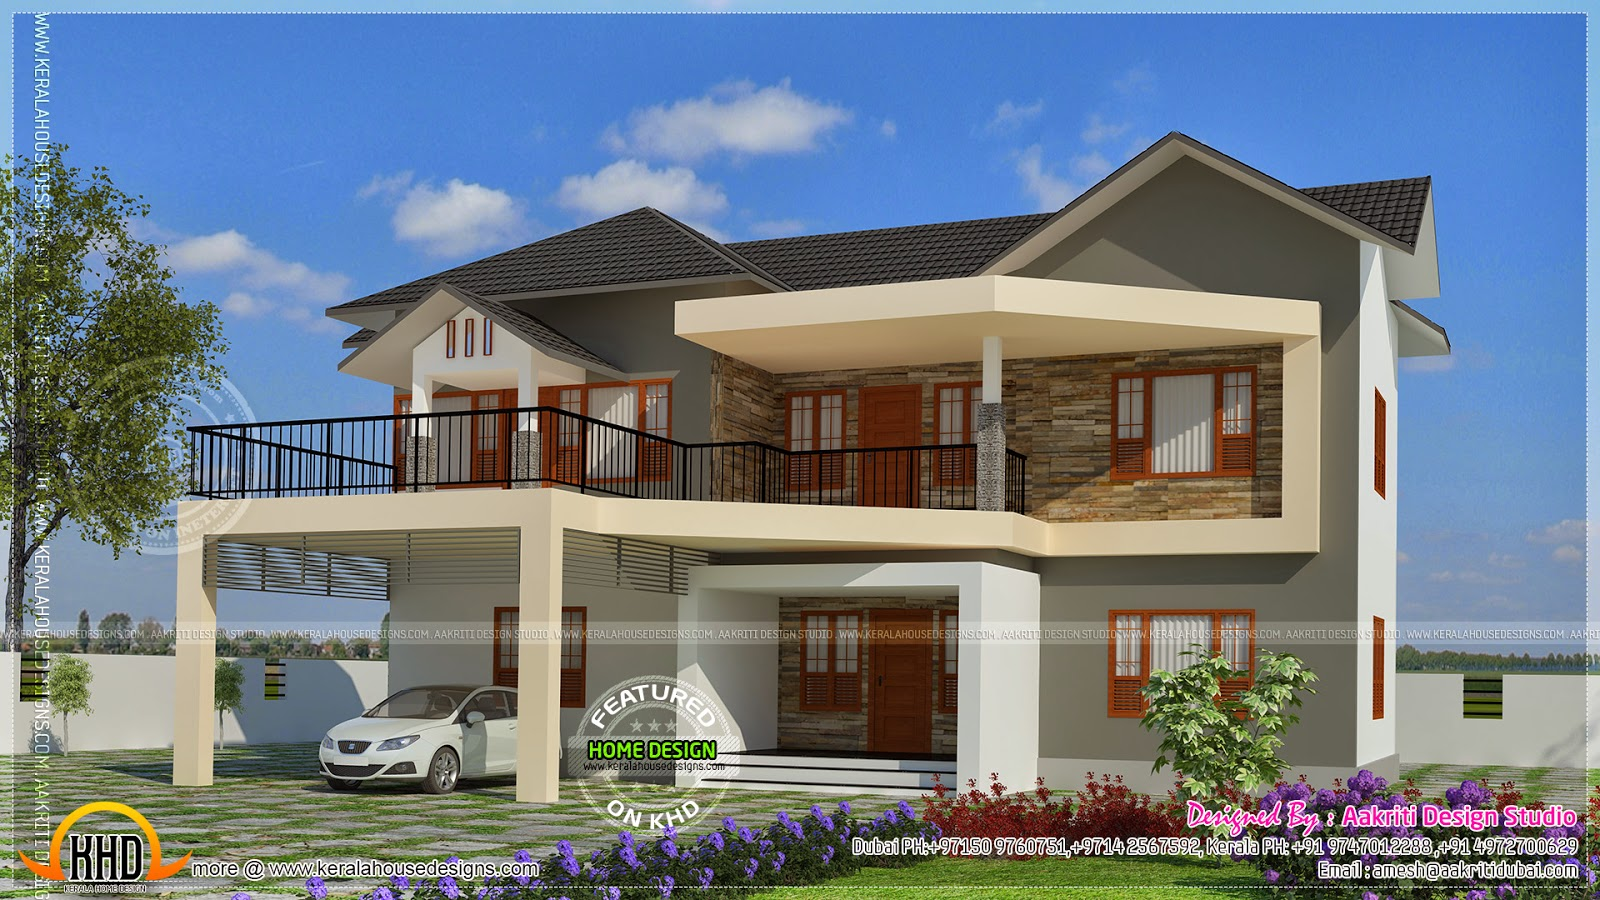 Elegant villa exterior kerala home design and floor plans for Exterior villa design photo gallery